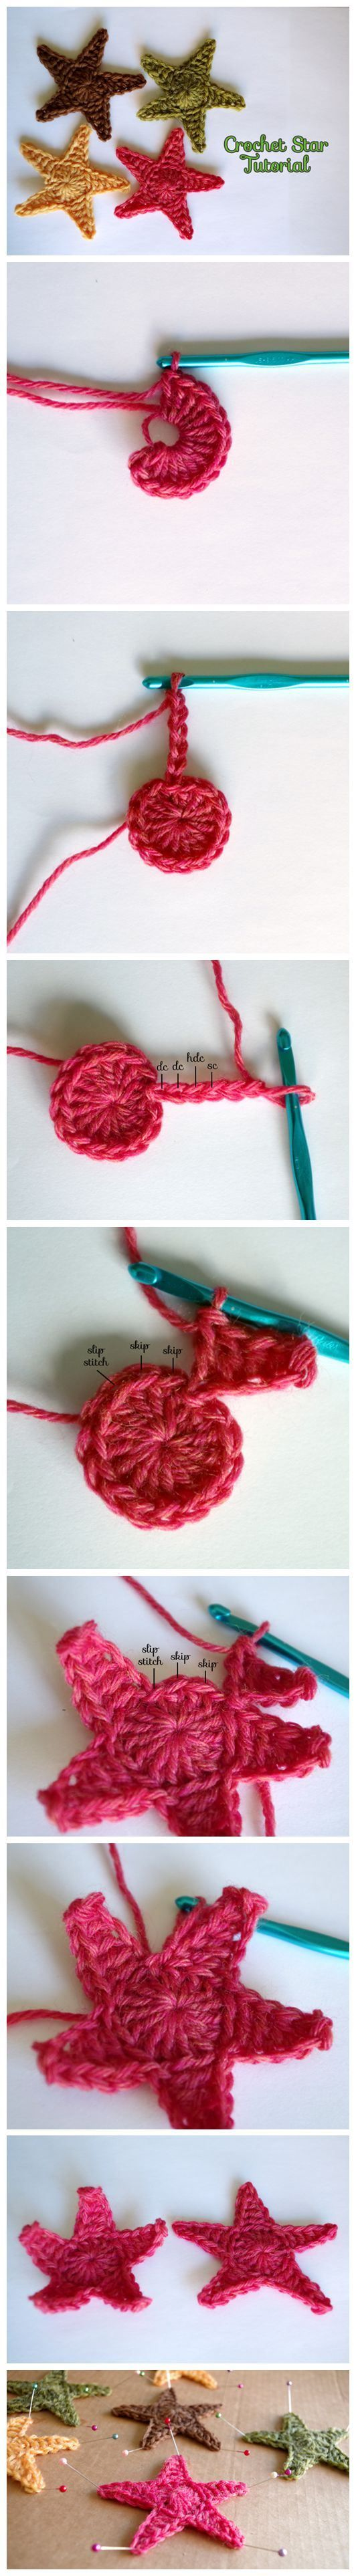 How to make a crochet star | #DIY and crafts